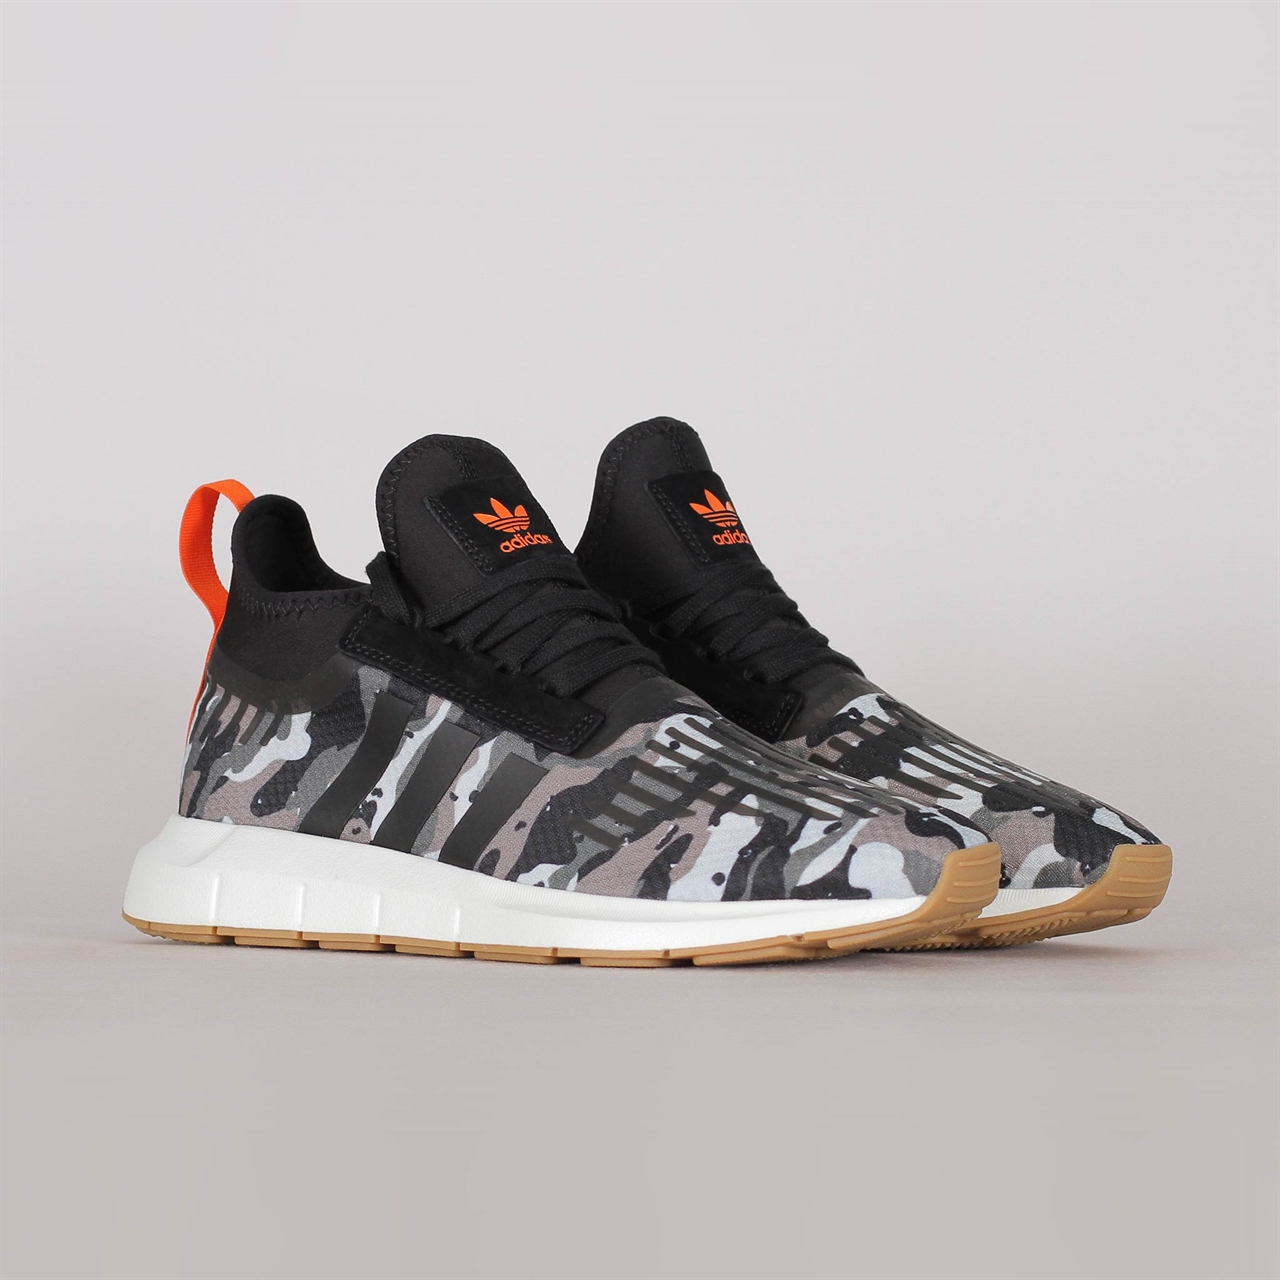 2bff5abdb35b0 Shelta - Adidas Originals Swift Run Barrier (B42234)